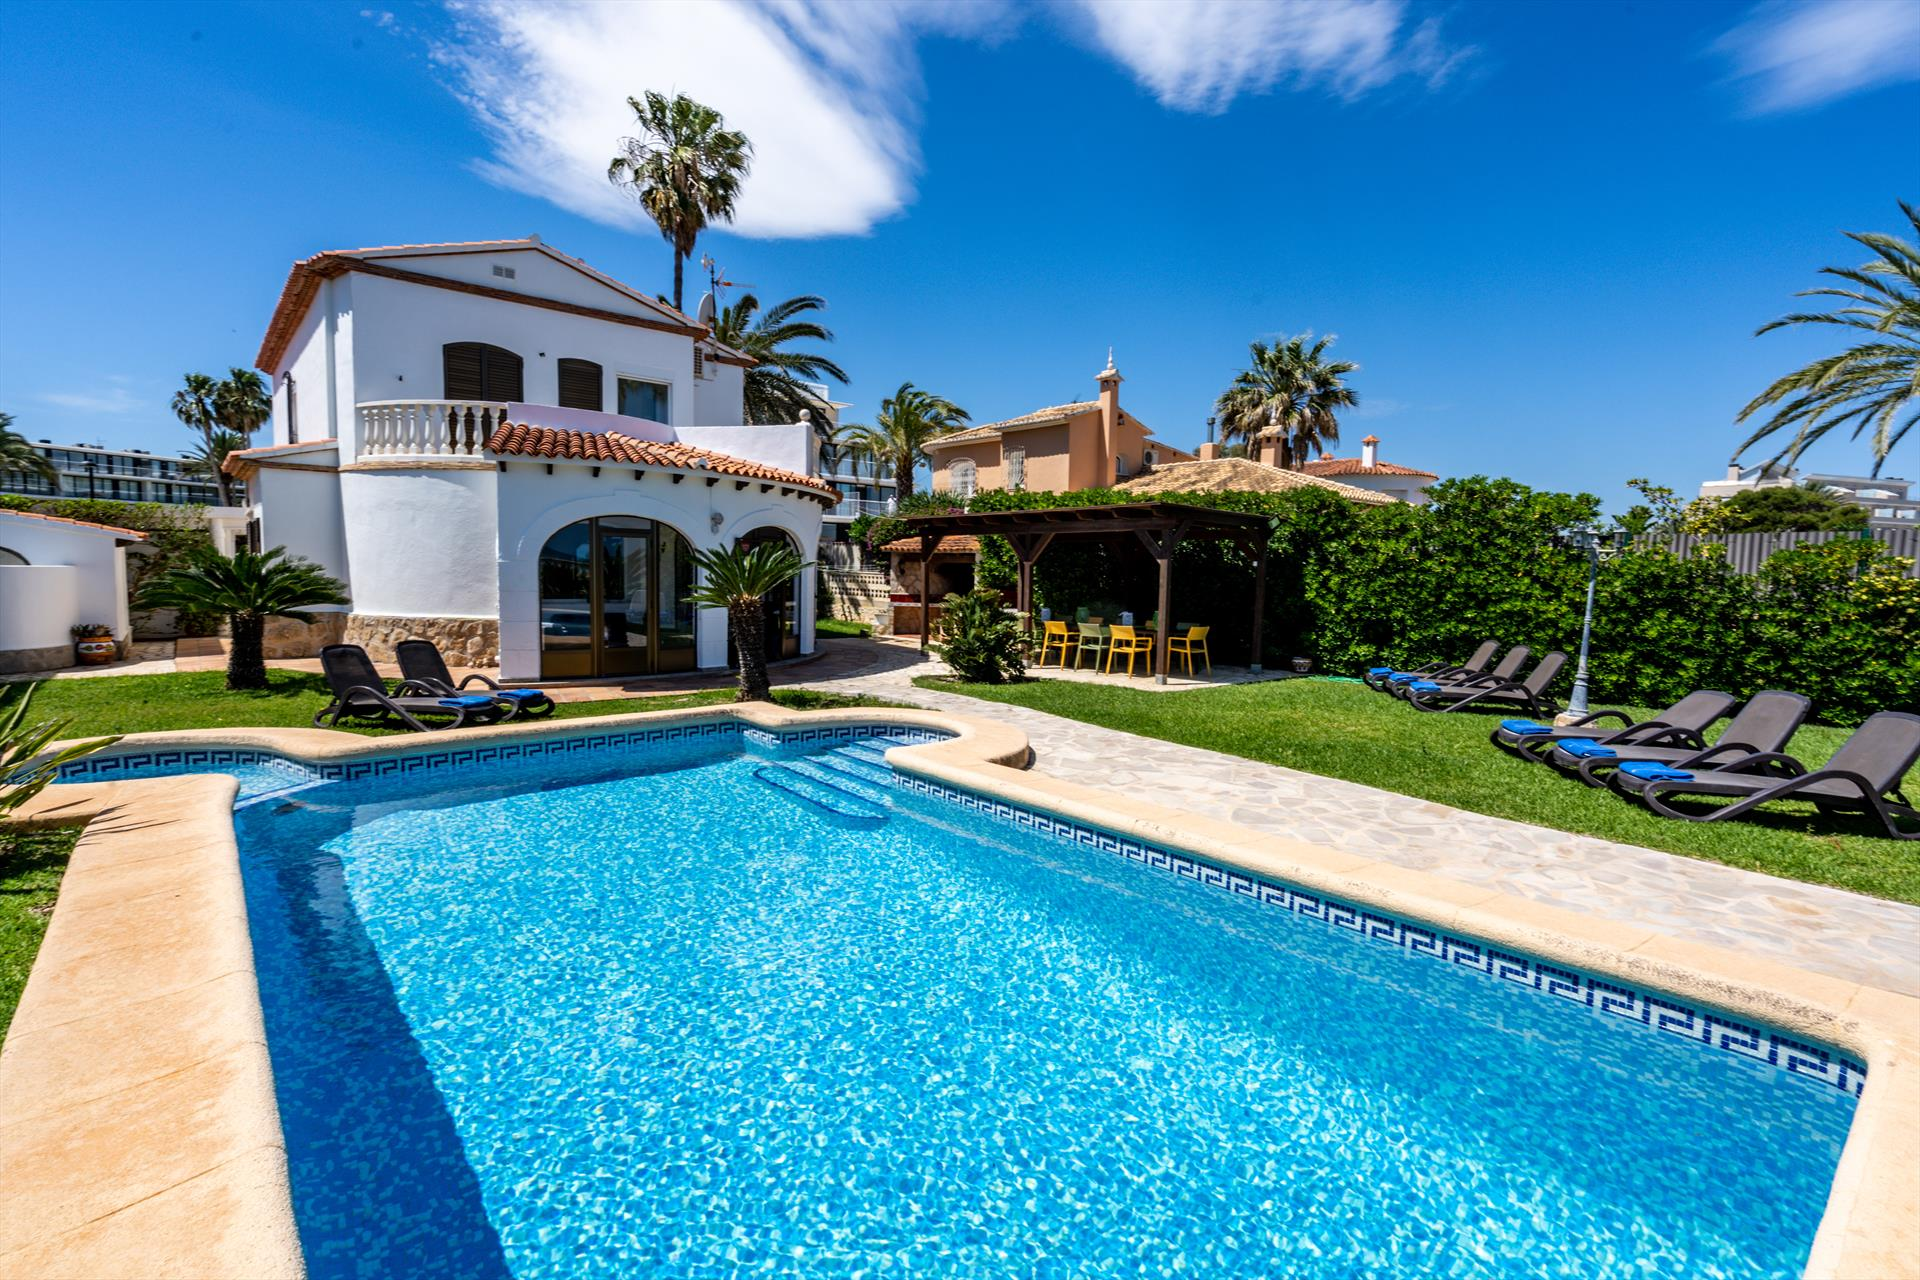 Villa Neptun, Villa in Denia, on the Costa Blanca, Spain with private pool for 12 persons. The villa is situated at 25 m from Almadrava.....